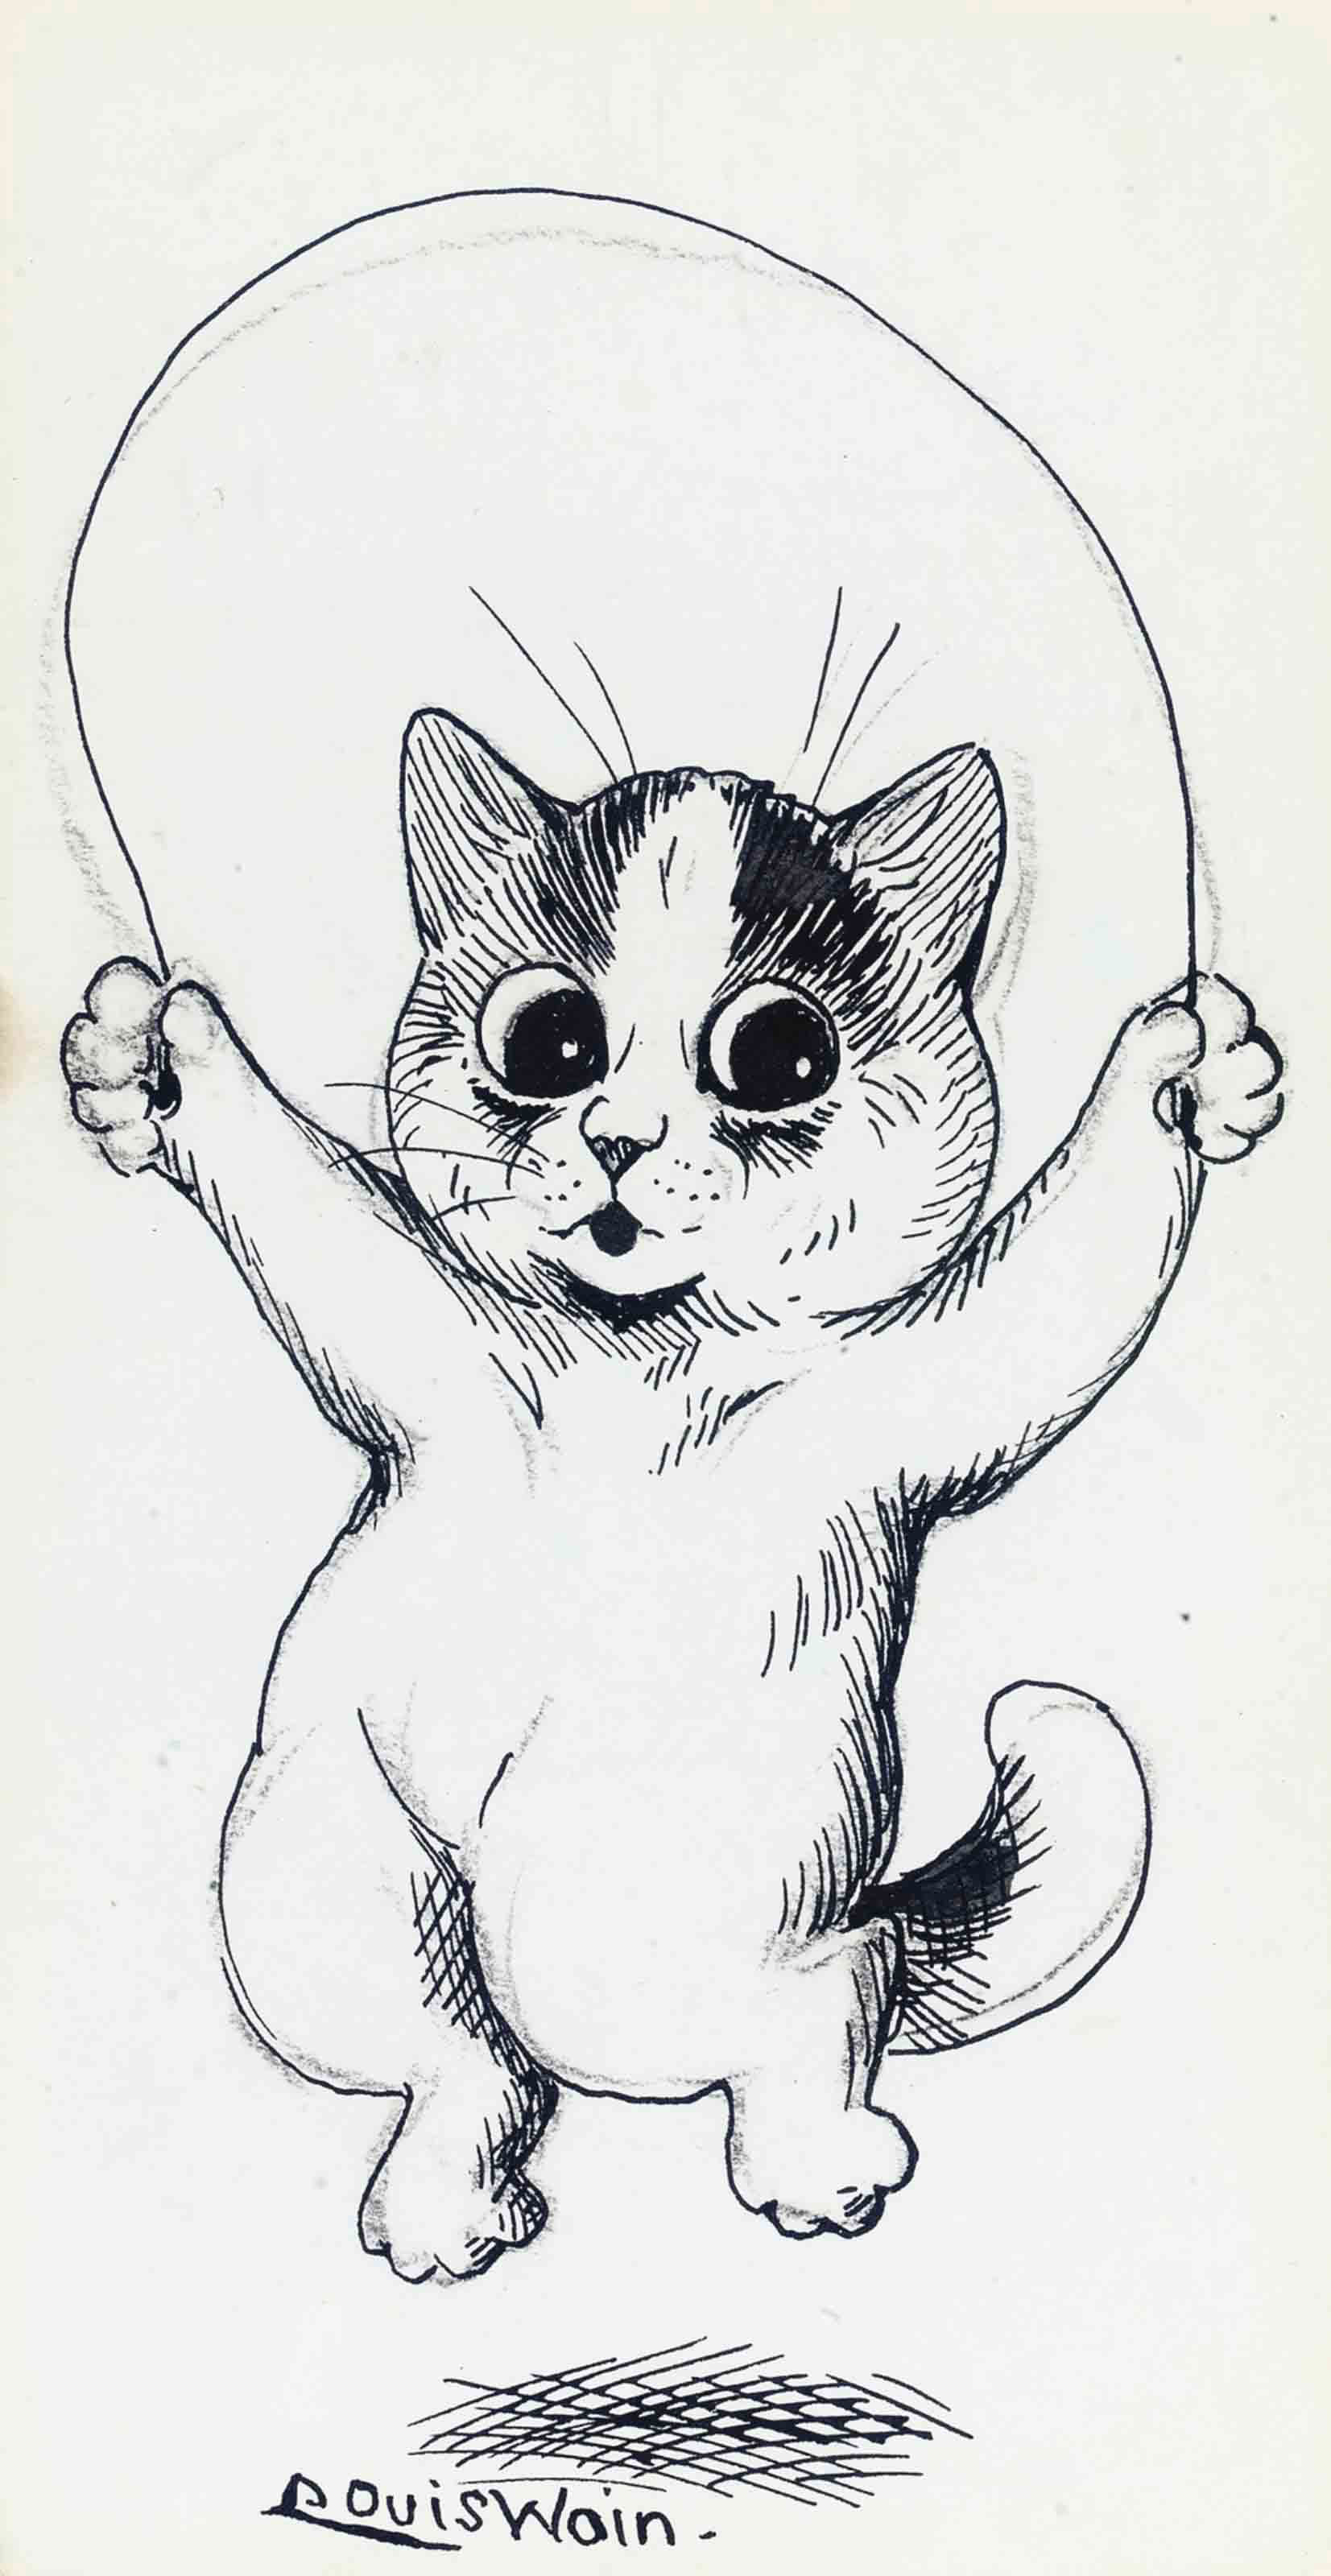 A skipping cat (illustrated); A dog with a hoop and stick; A seated bear; and A stretching cat